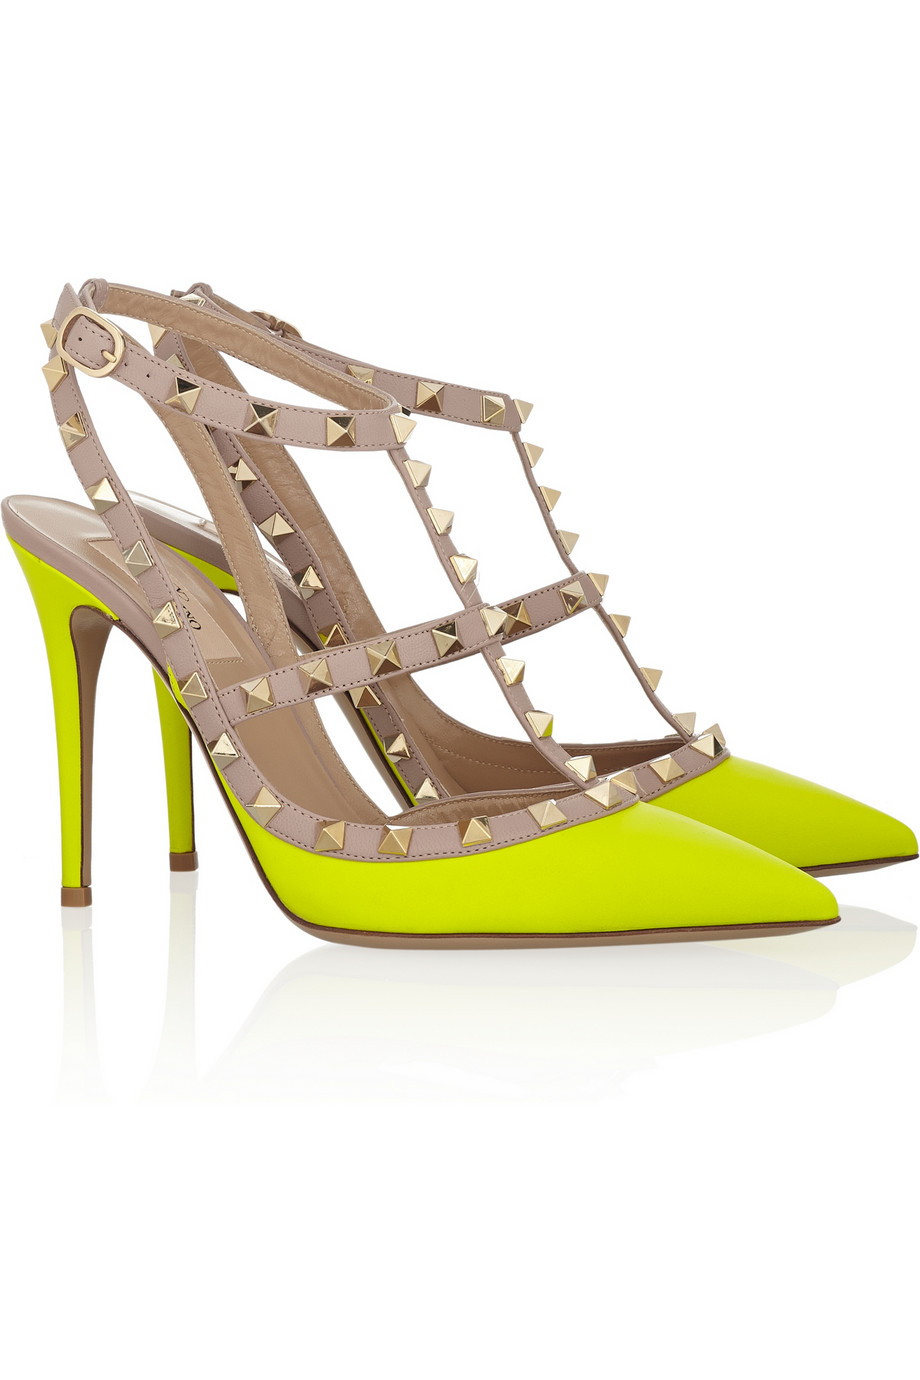 ddb56e0ce9 Valentino Rockstud Neon Leather Pumps in Yellow - Lyst